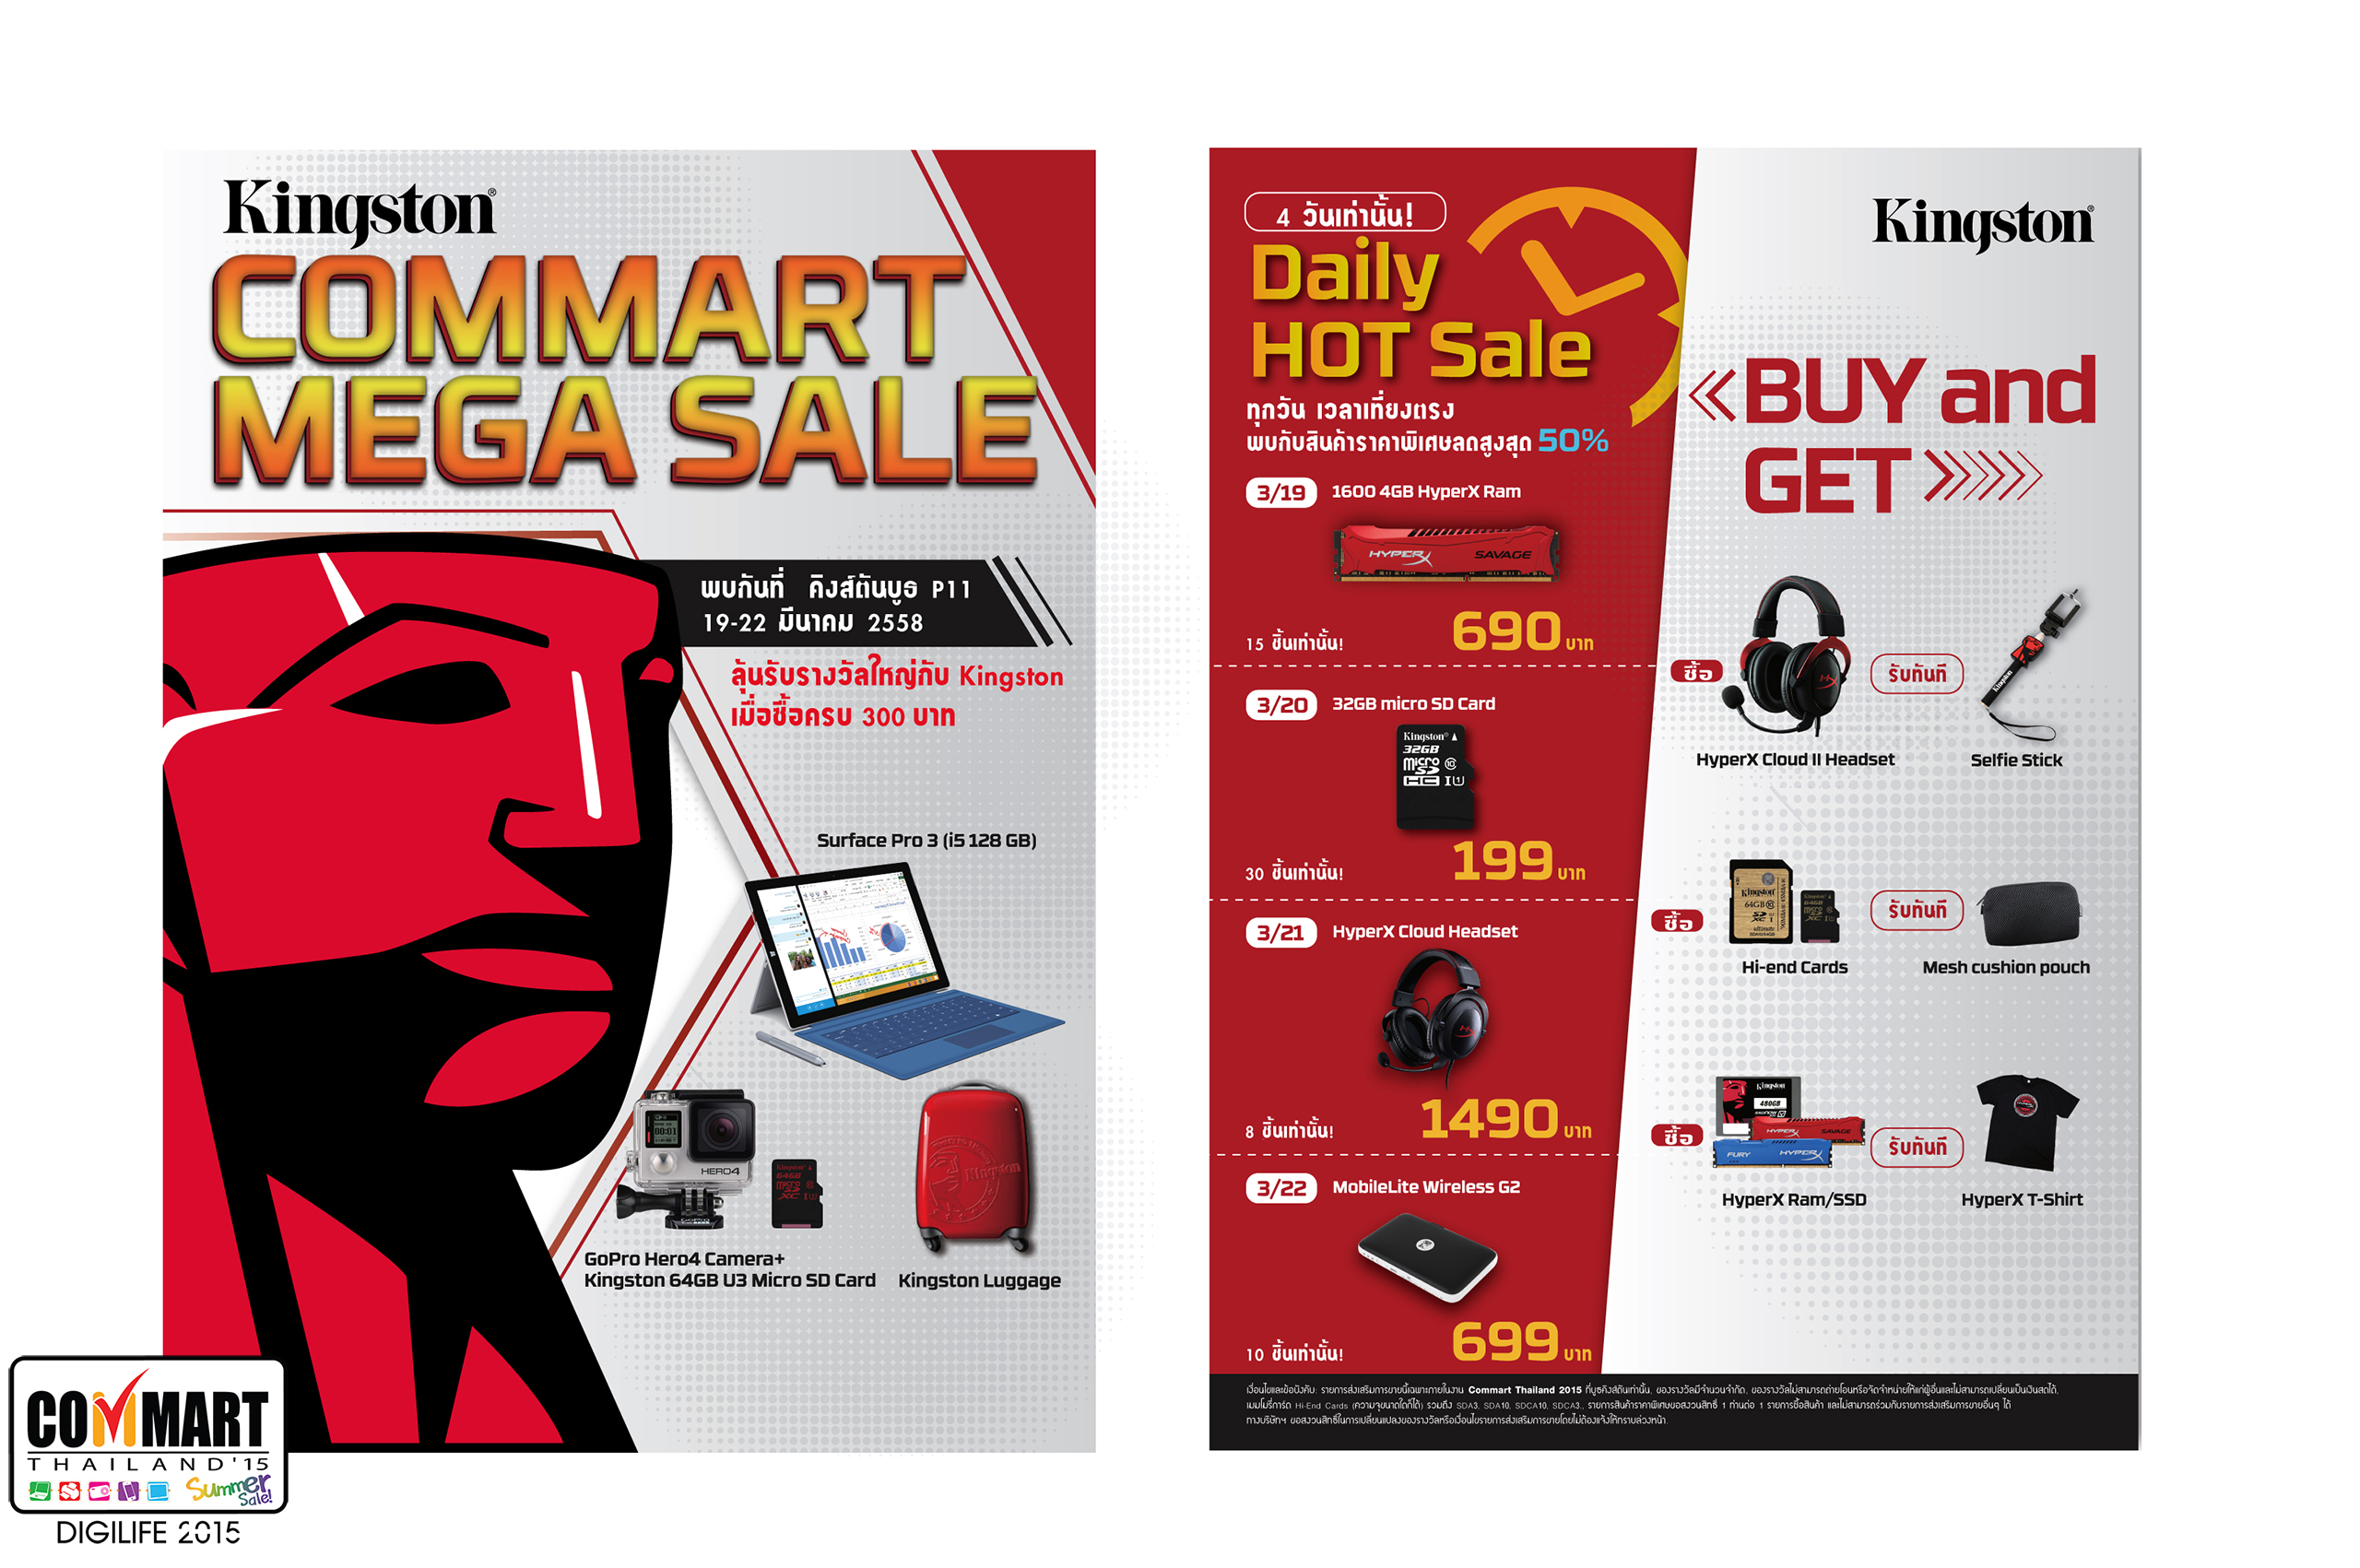 Kingston-Commart-web-2